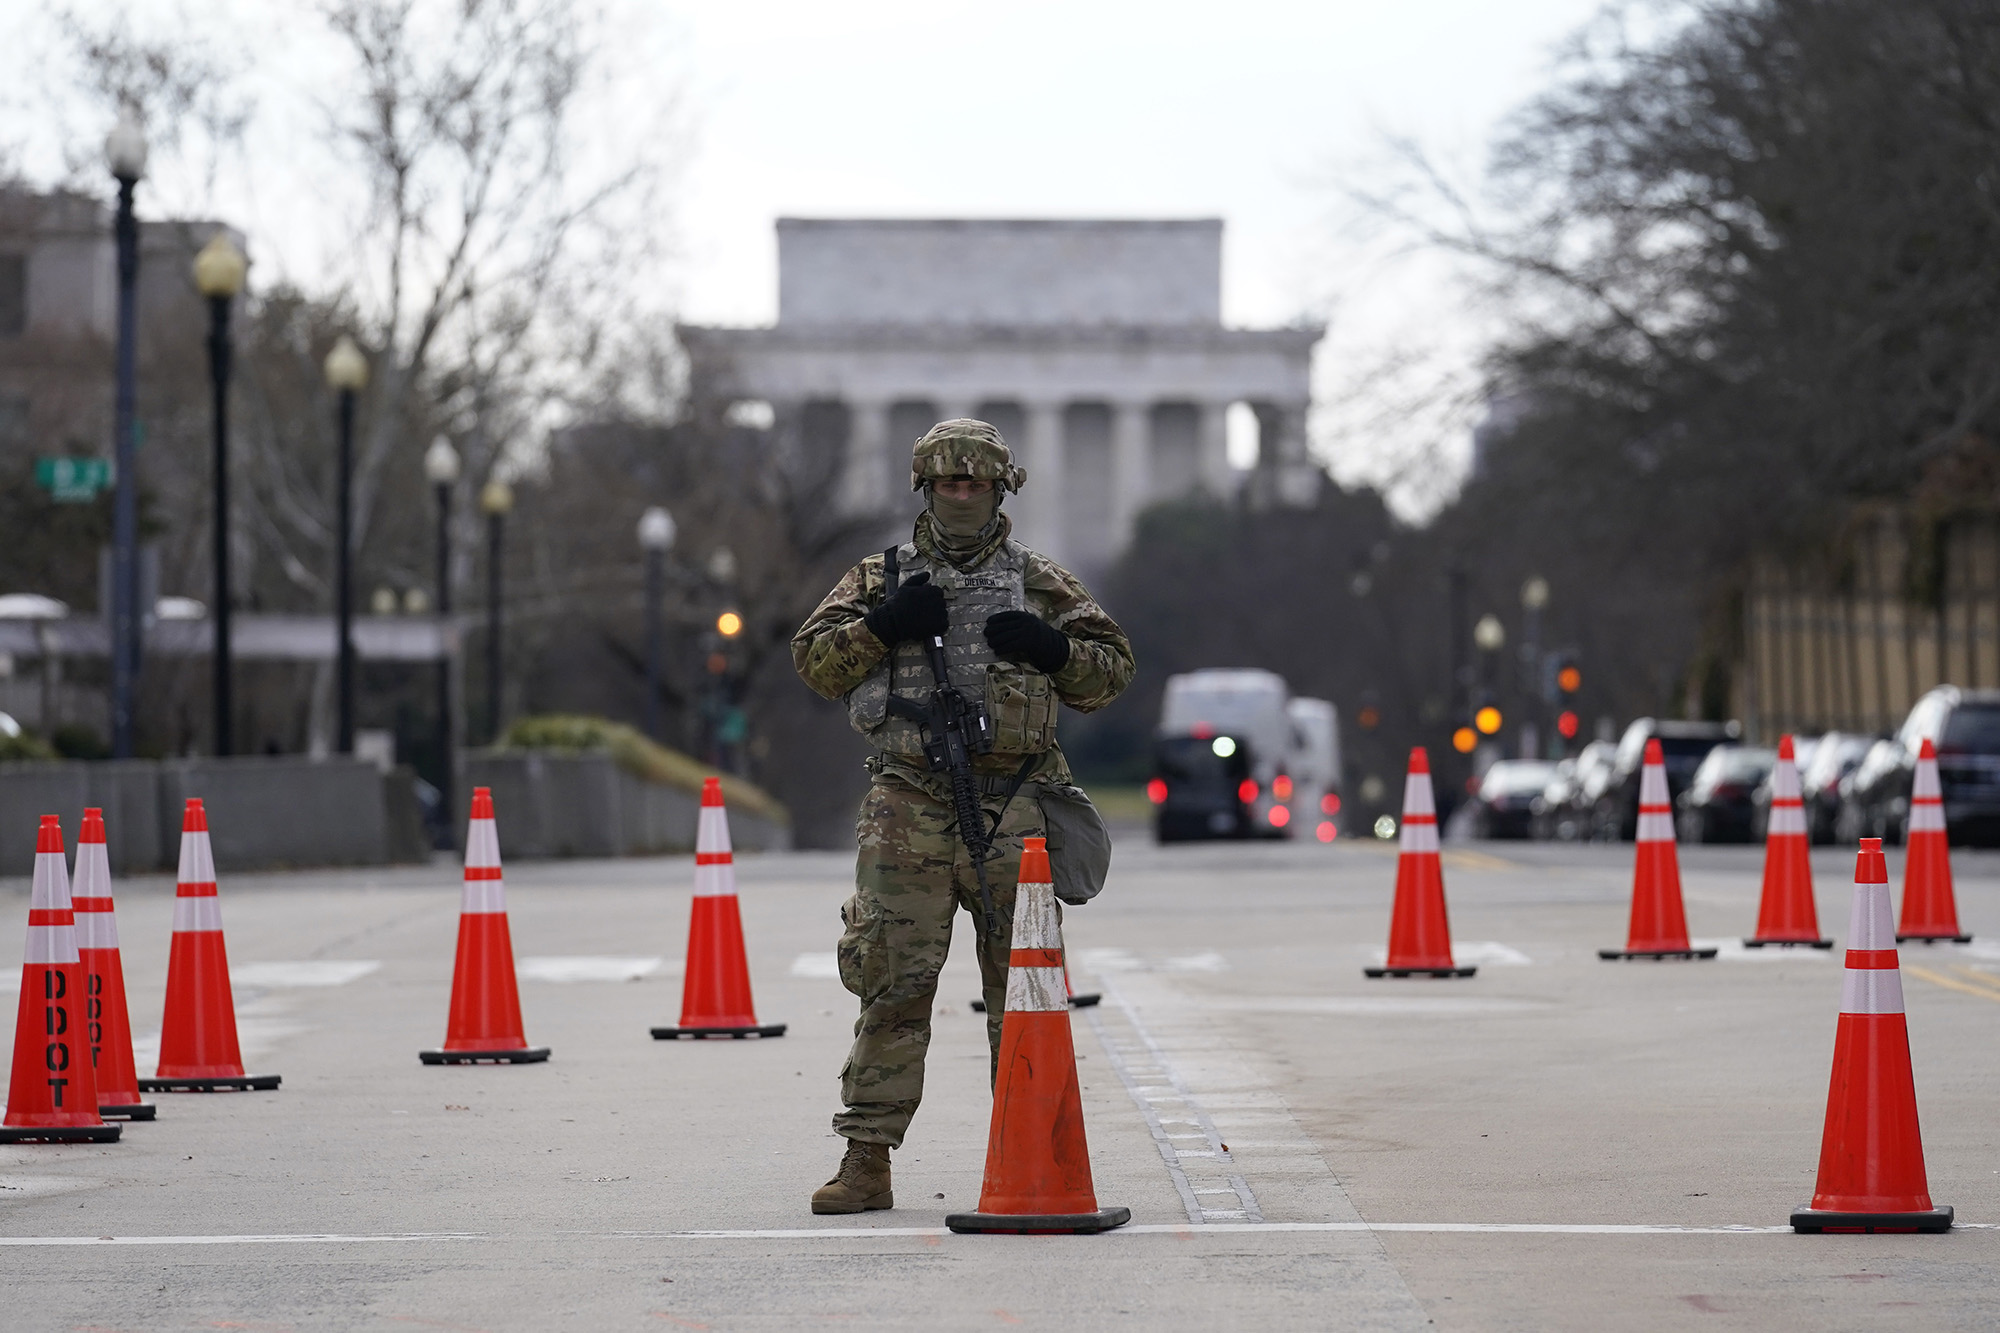 A National Guard stands at a road block near the Supreme Court ahead of President-elect Joe Biden's inauguration ceremony, Wednesday, Jan. 20, 2021, in Washington. (Gerald Herbert/AP)